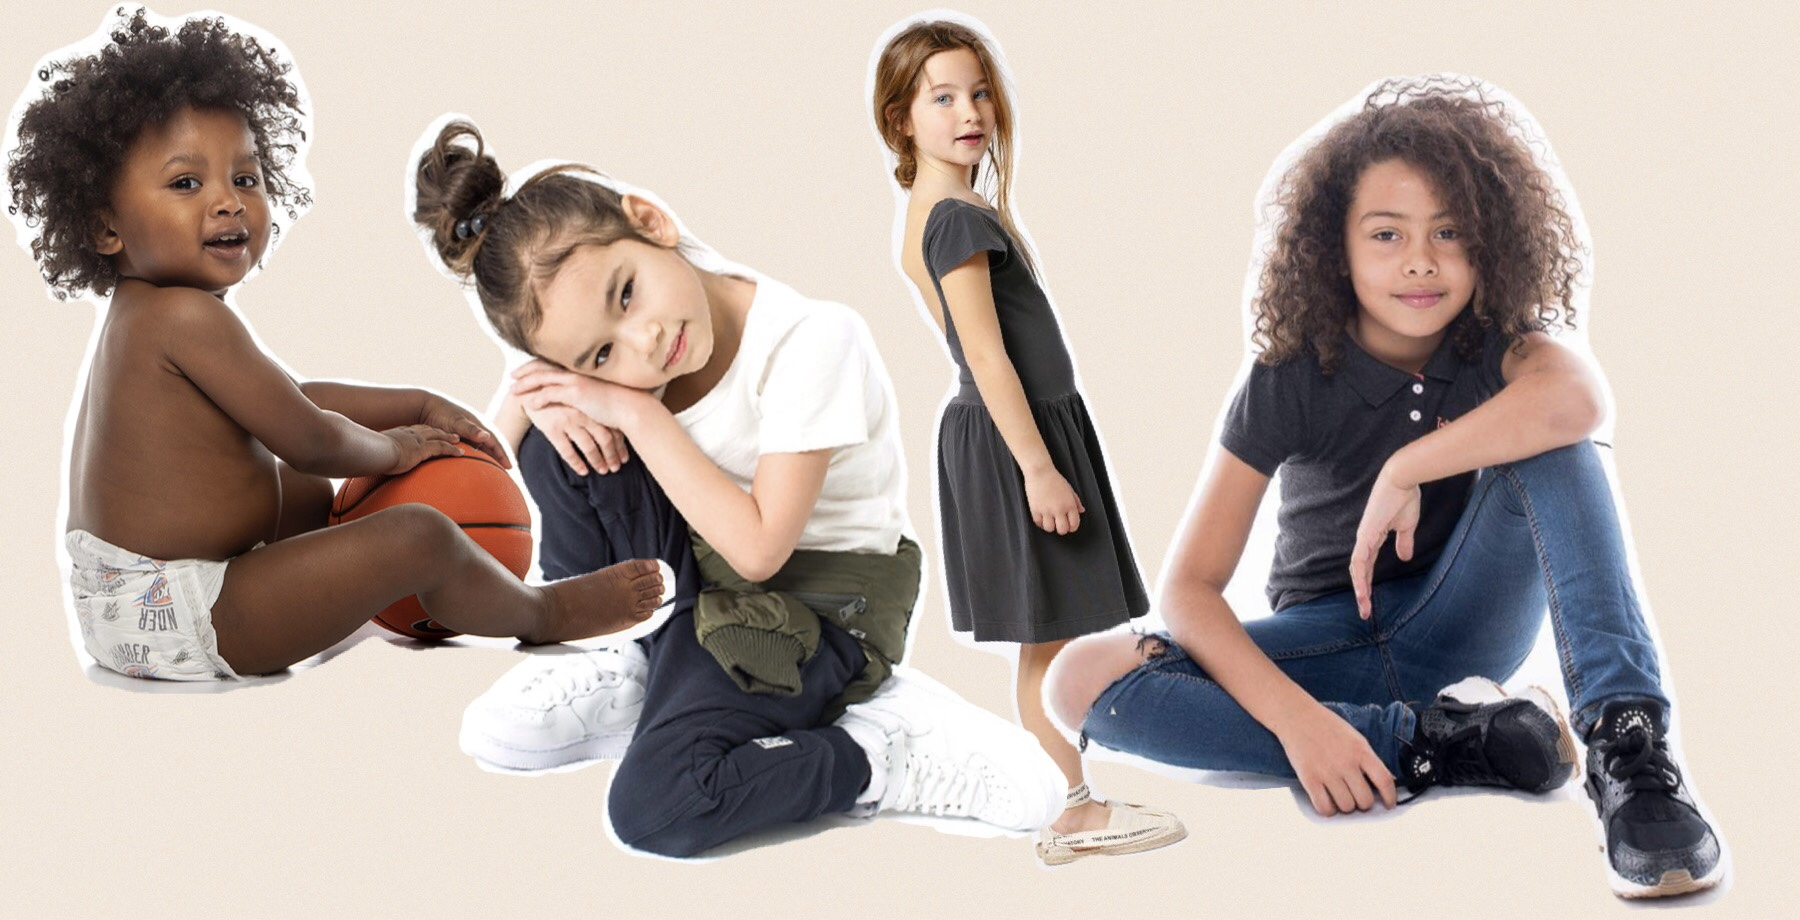 Child Modeling Agencies – 5 Exciting Things You Need To Know